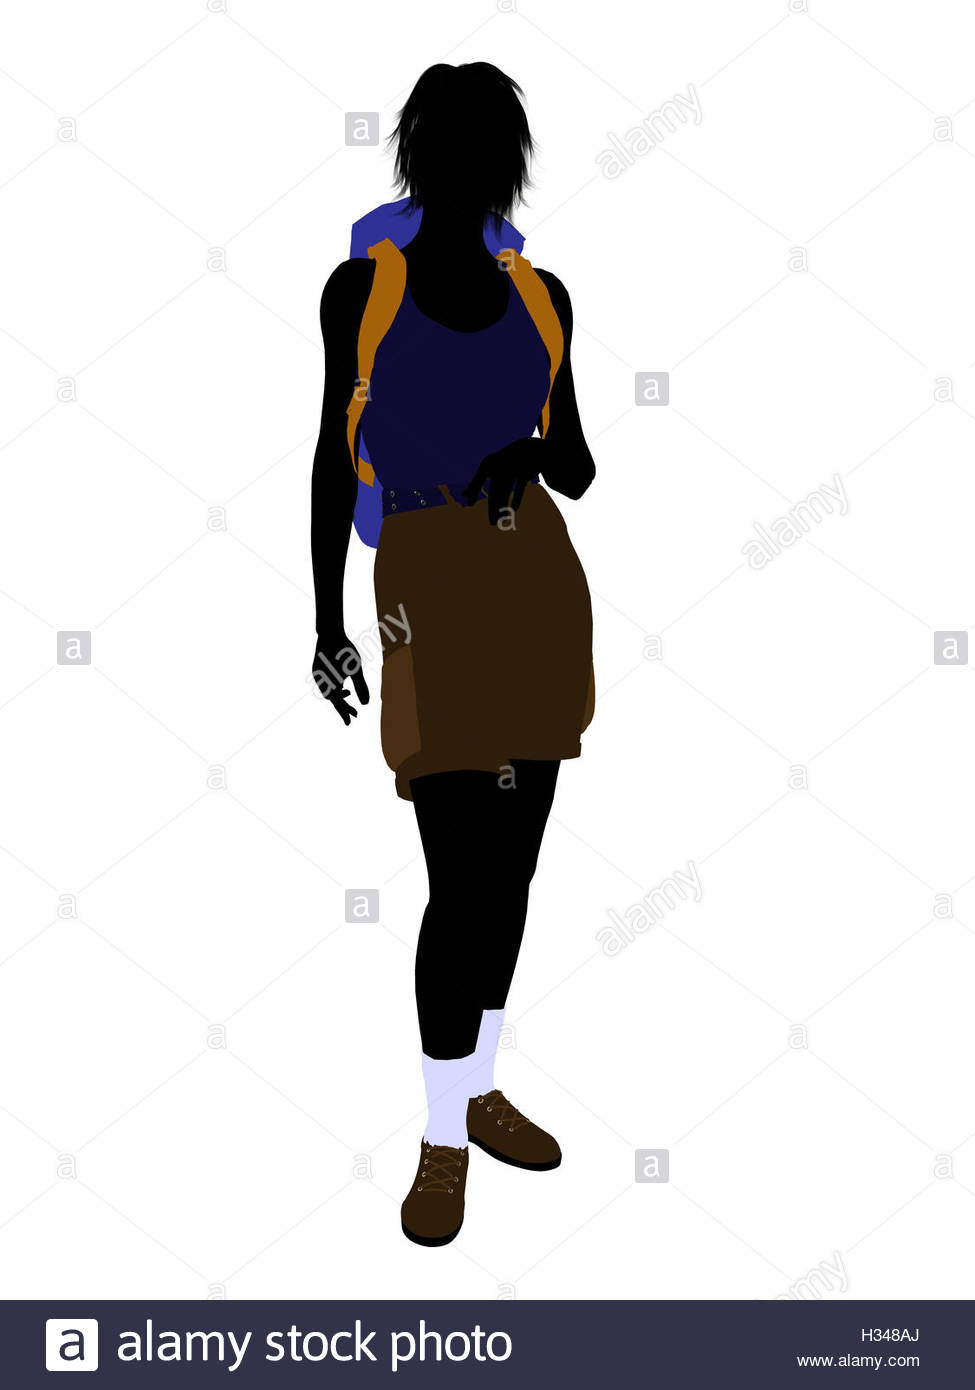 975x1390 Girl Hiker Silhouette Stock Photo, Royalty Free Image 122410922